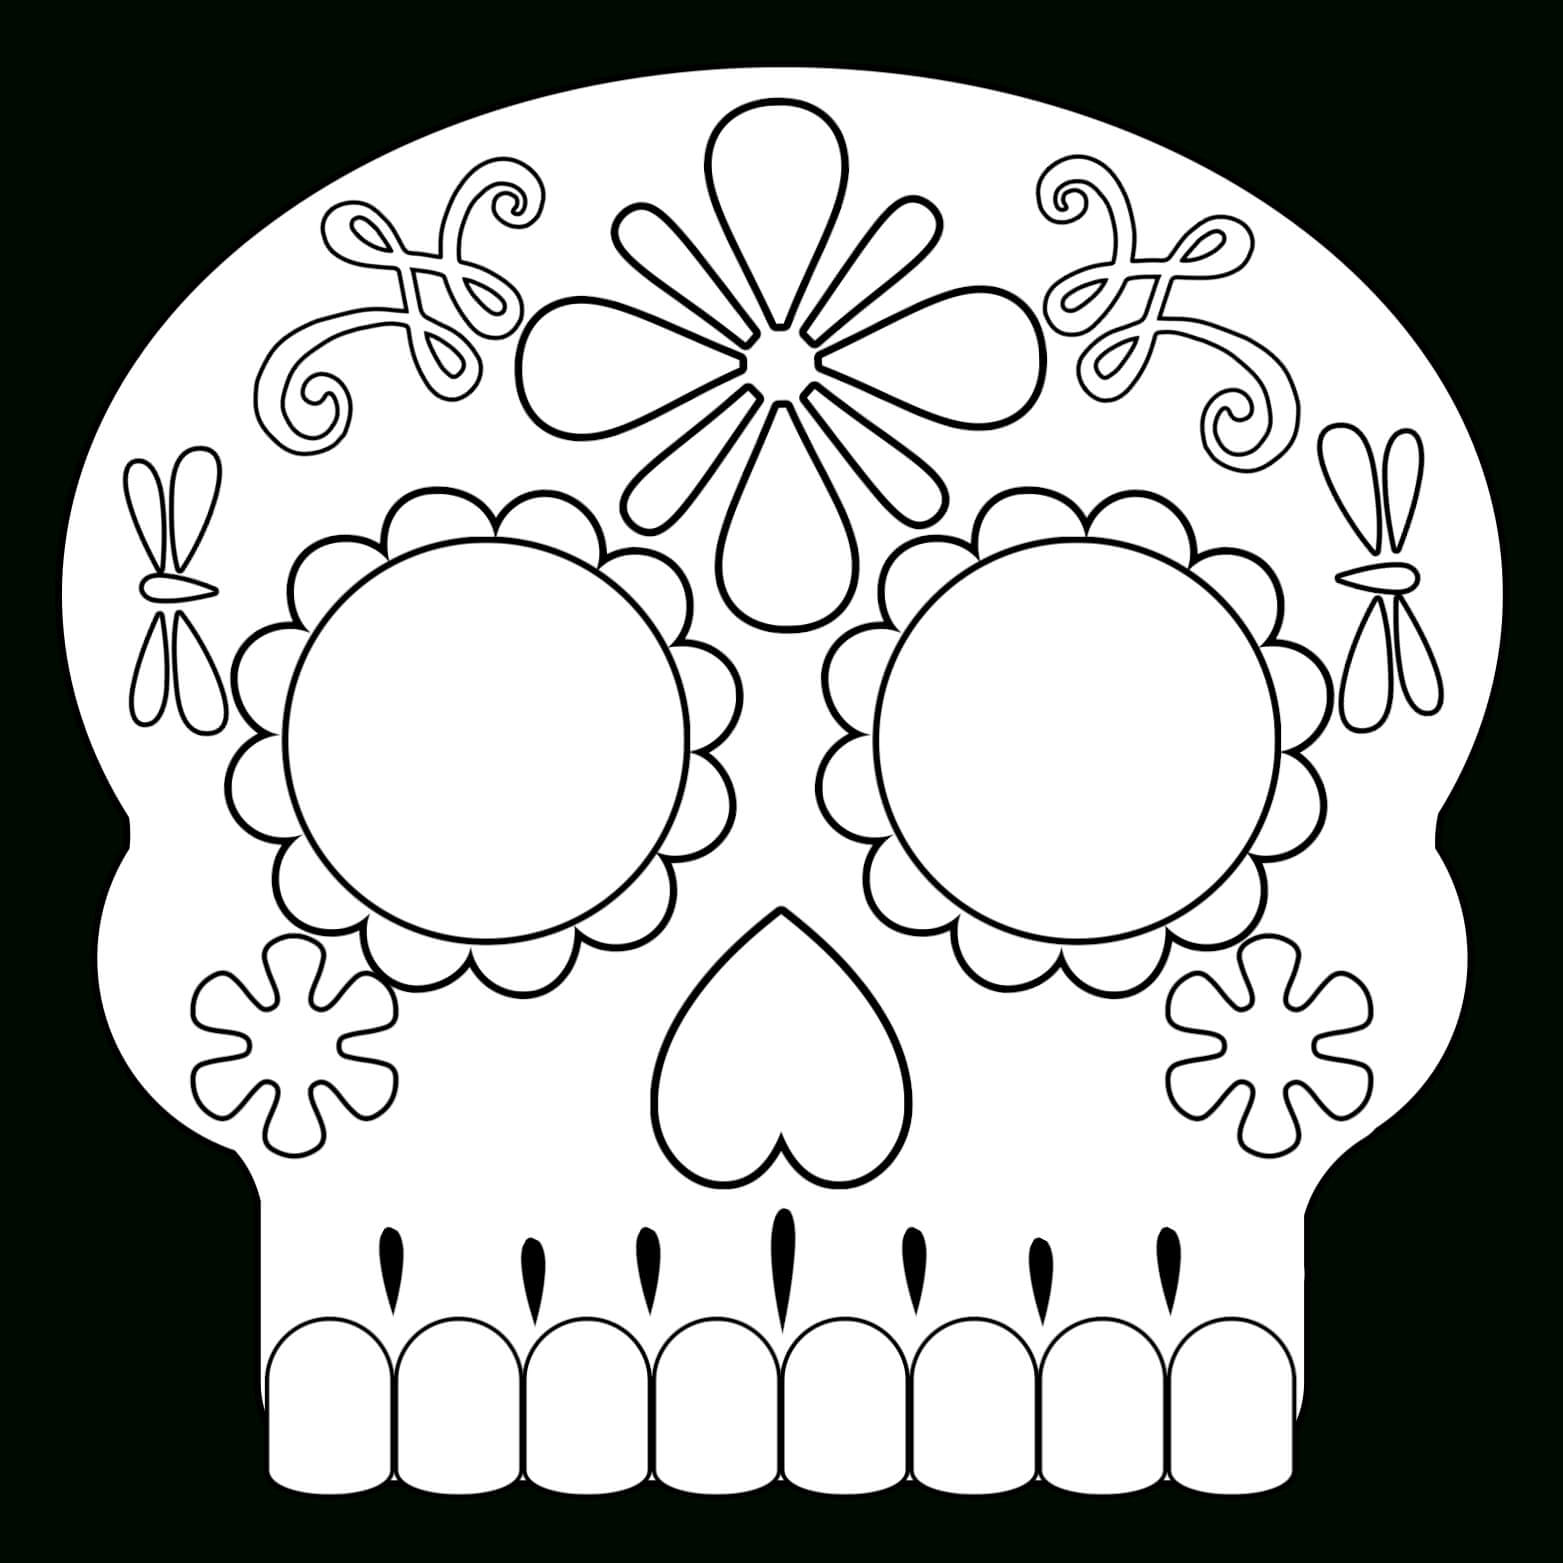 Day Of The Dead Masks Sugar Skulls Free Printable - Paper throughout Blank Sugar Skull Template